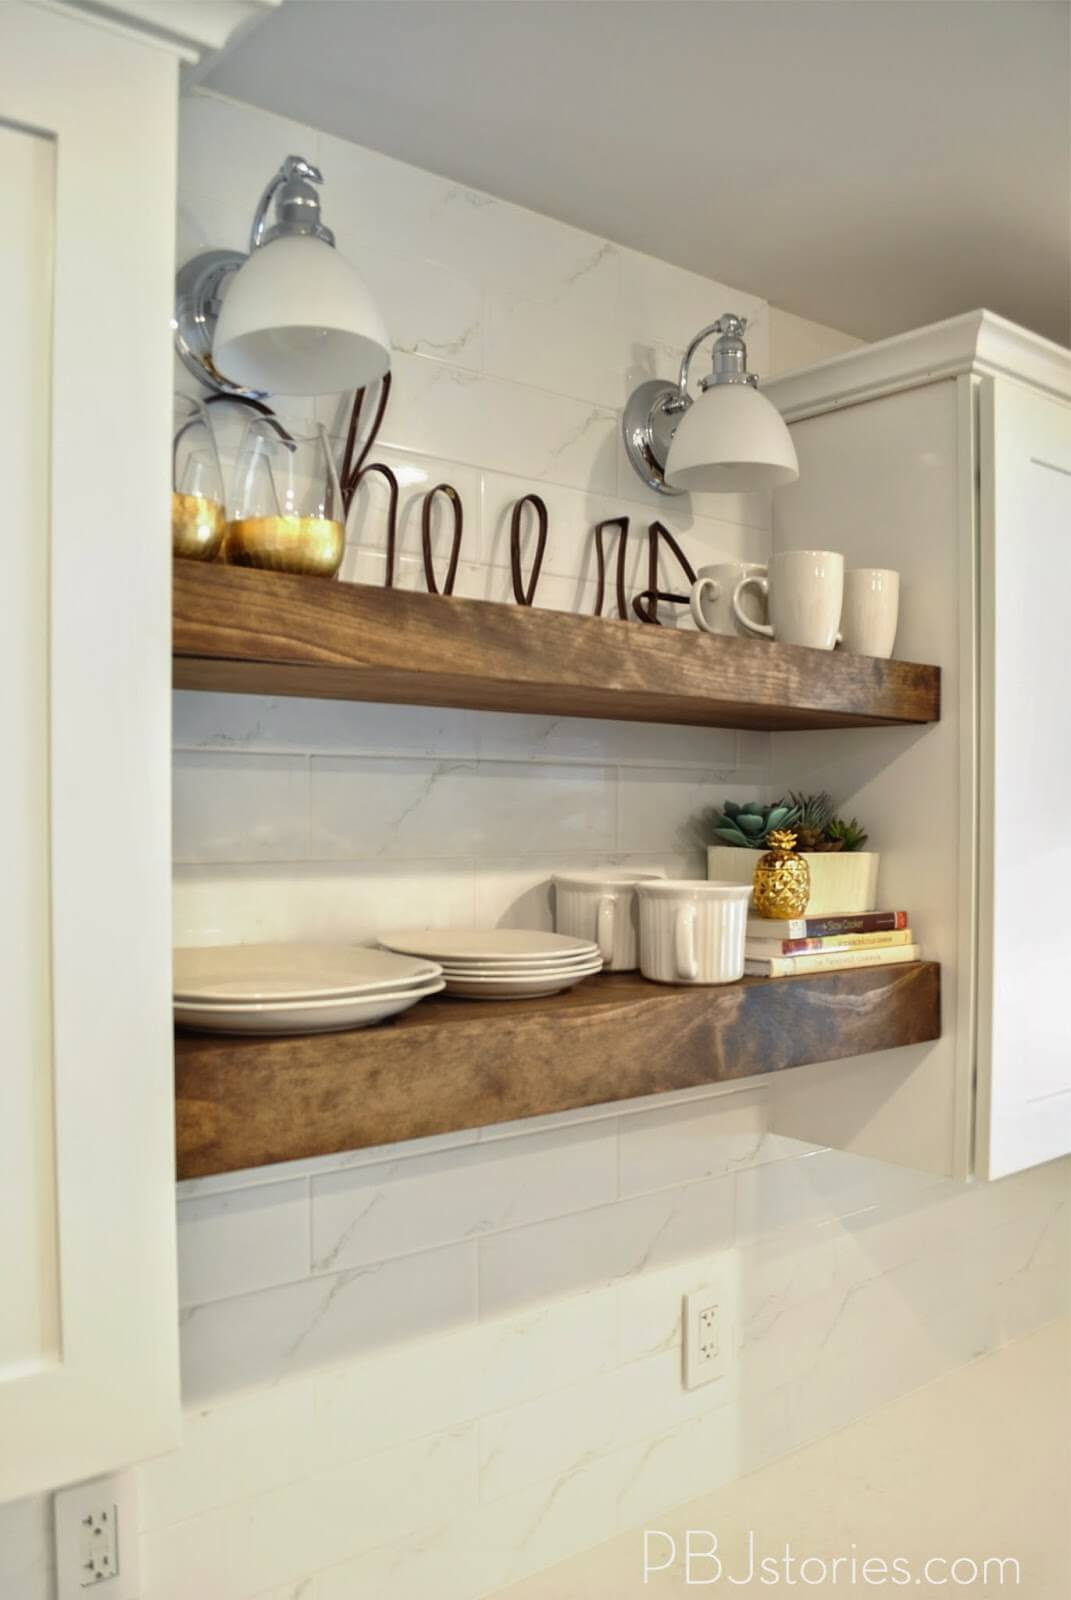 best diy floating shelf ideas and designs for homebnc heavy duty kitchen shelves comfy breakfast nook display easy shoe rack homebase white mini island ikea wire wall shelving